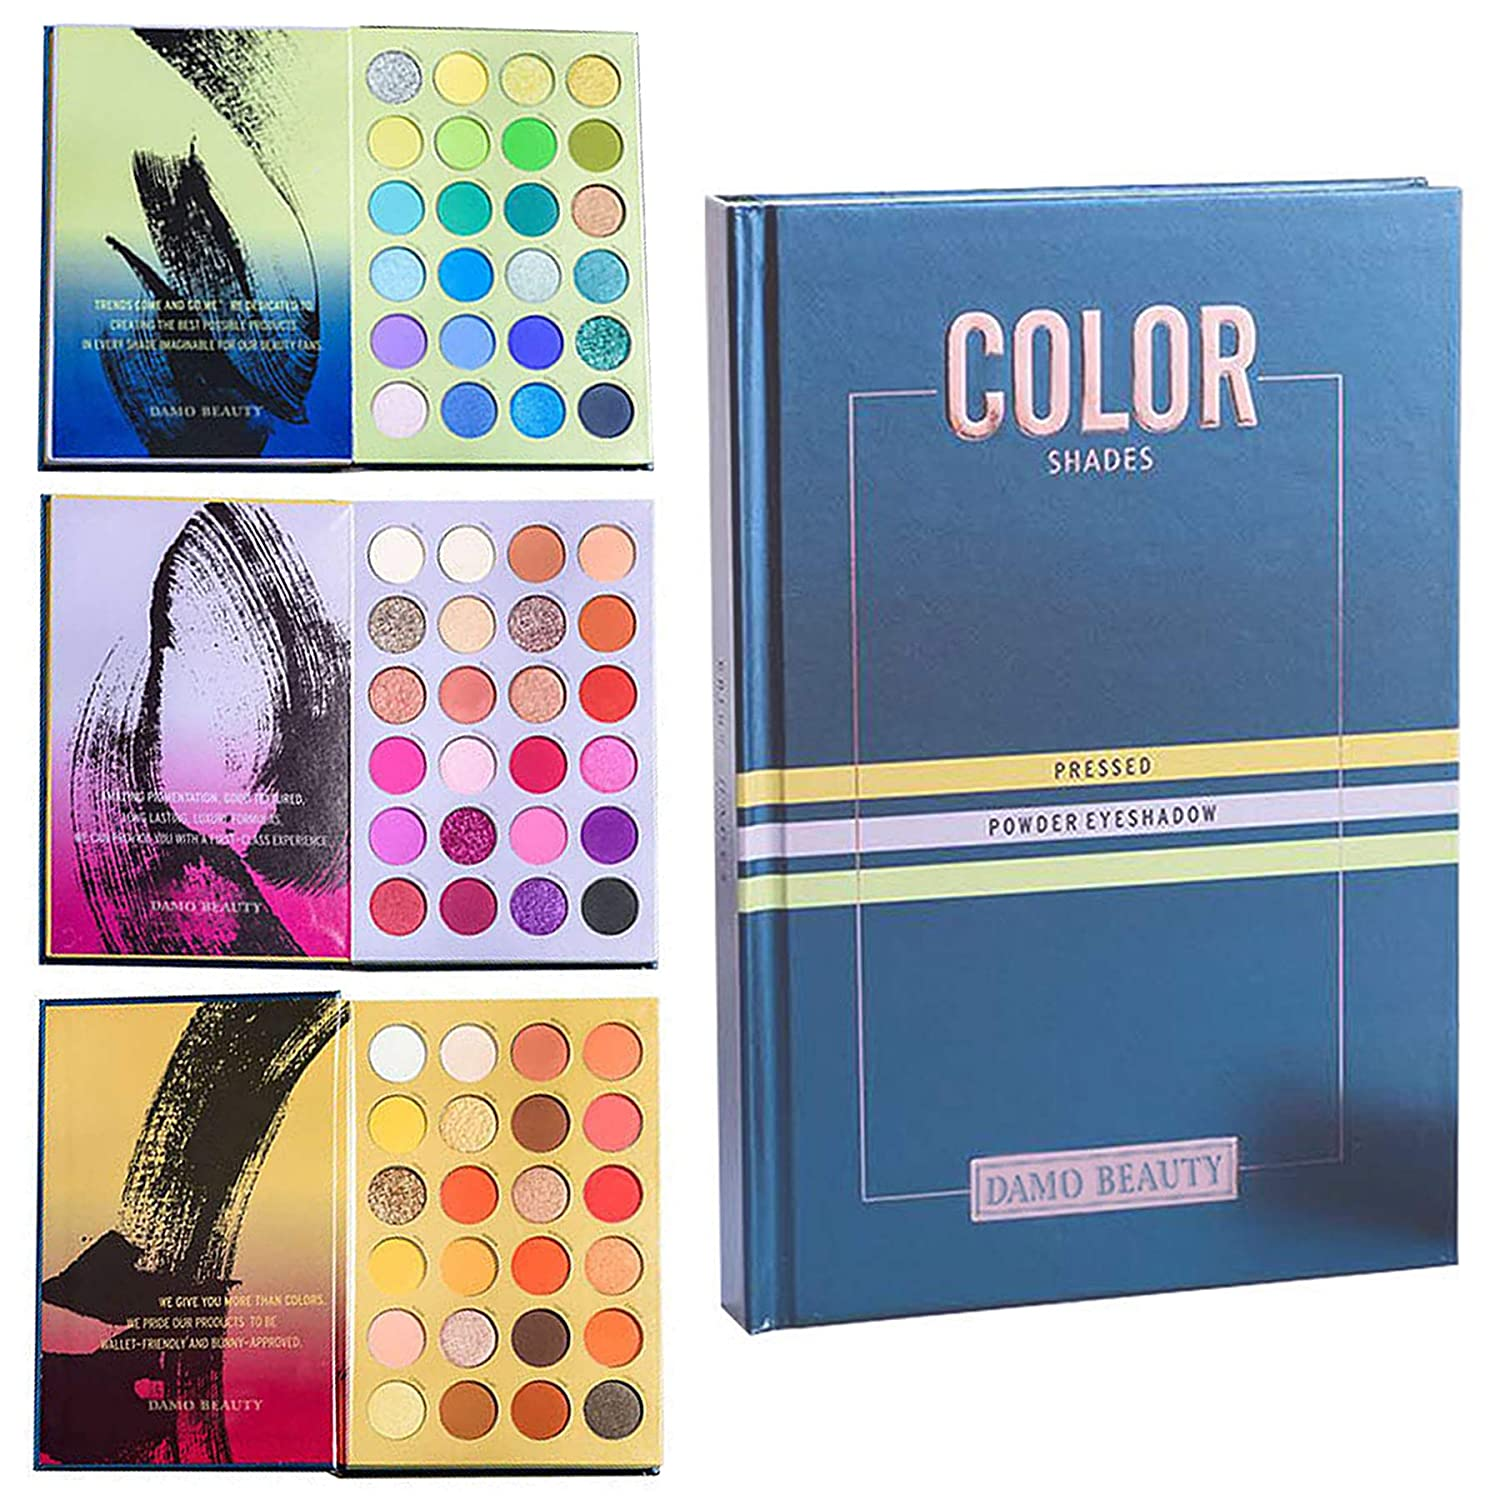 Vtrem 72 Colors Eyeshadow Palette Matte Pearlescent Eye Makeup Palette with 3 Layers Long Lasting Waterproof Eyes Shadow Powder Natural Highly Pigmented Easy to Blend